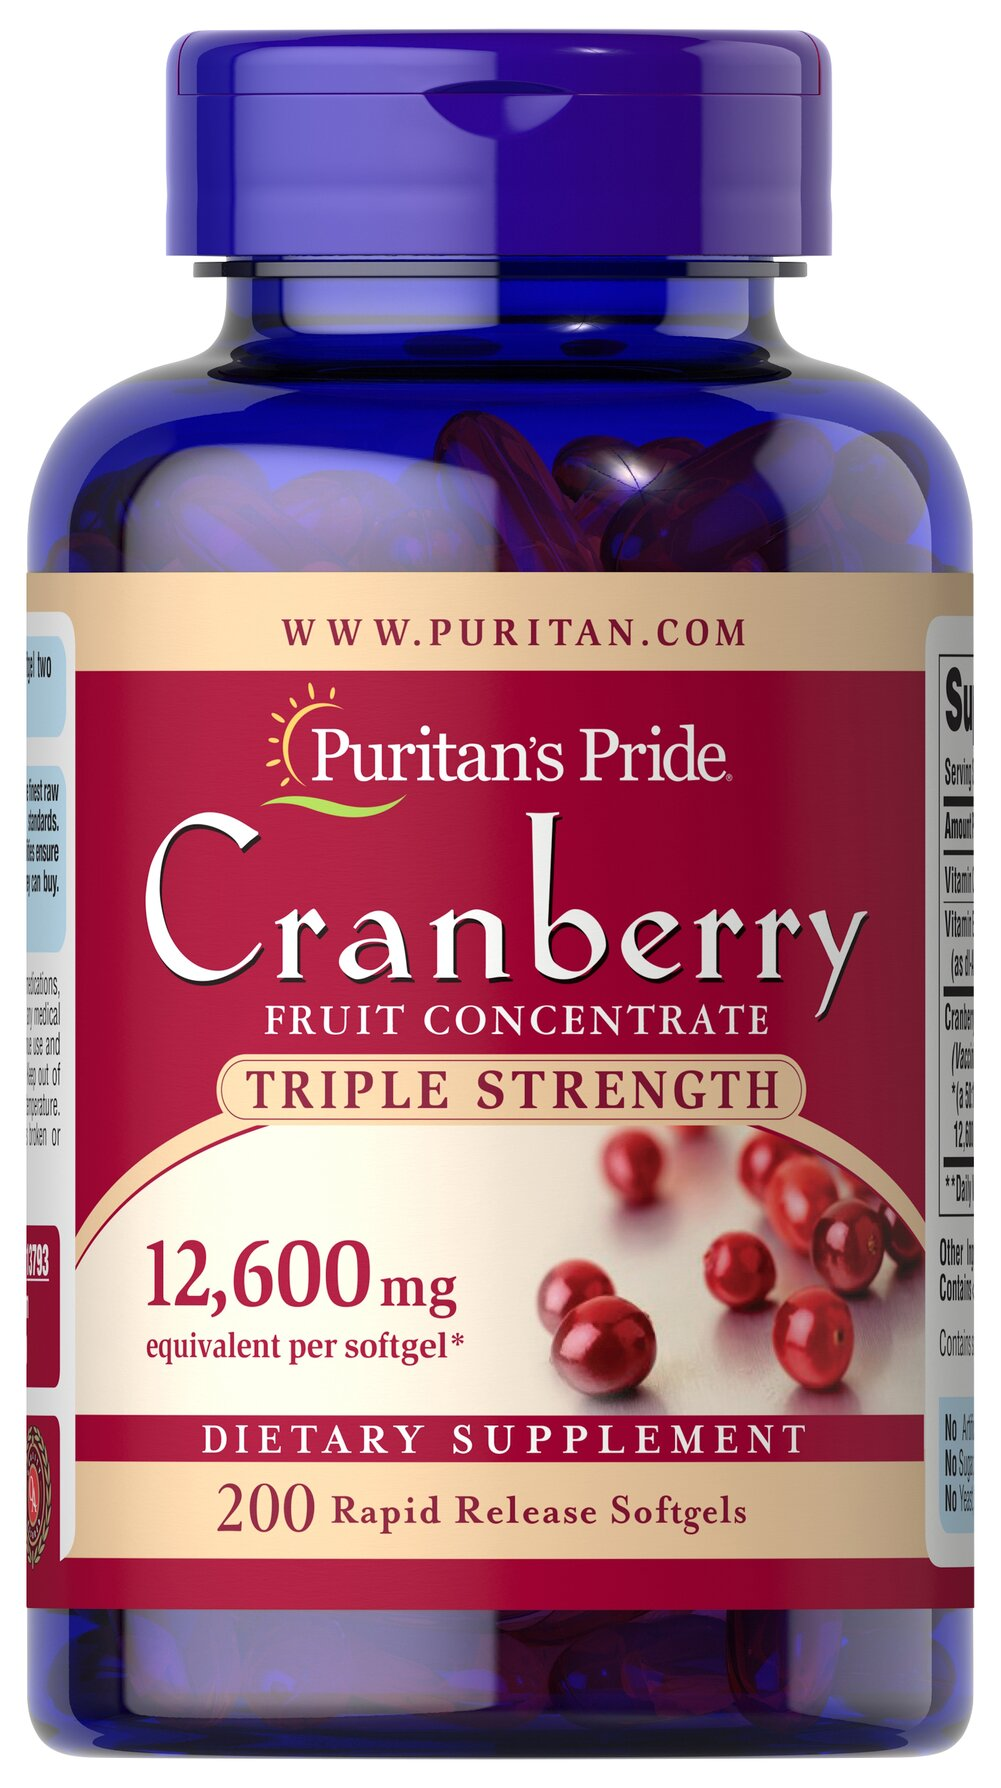 Triple Strength Cranberry Fruit Concentrate 12,600 mg  200 Softgels 12600 mg $19.99